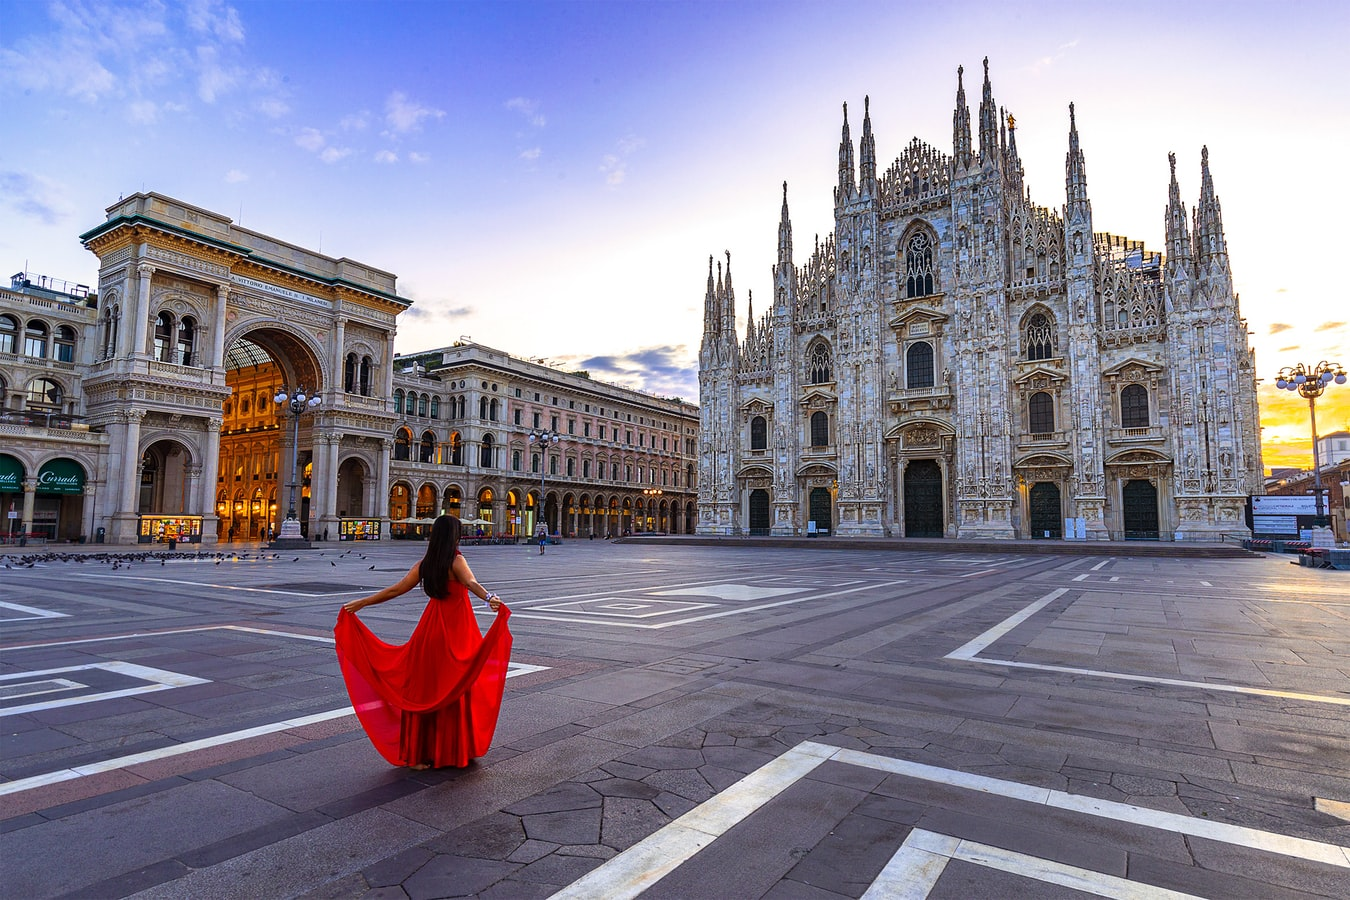 Metropolitan City of Milan, Italy (Photo: Daniil Vnoutchkov)